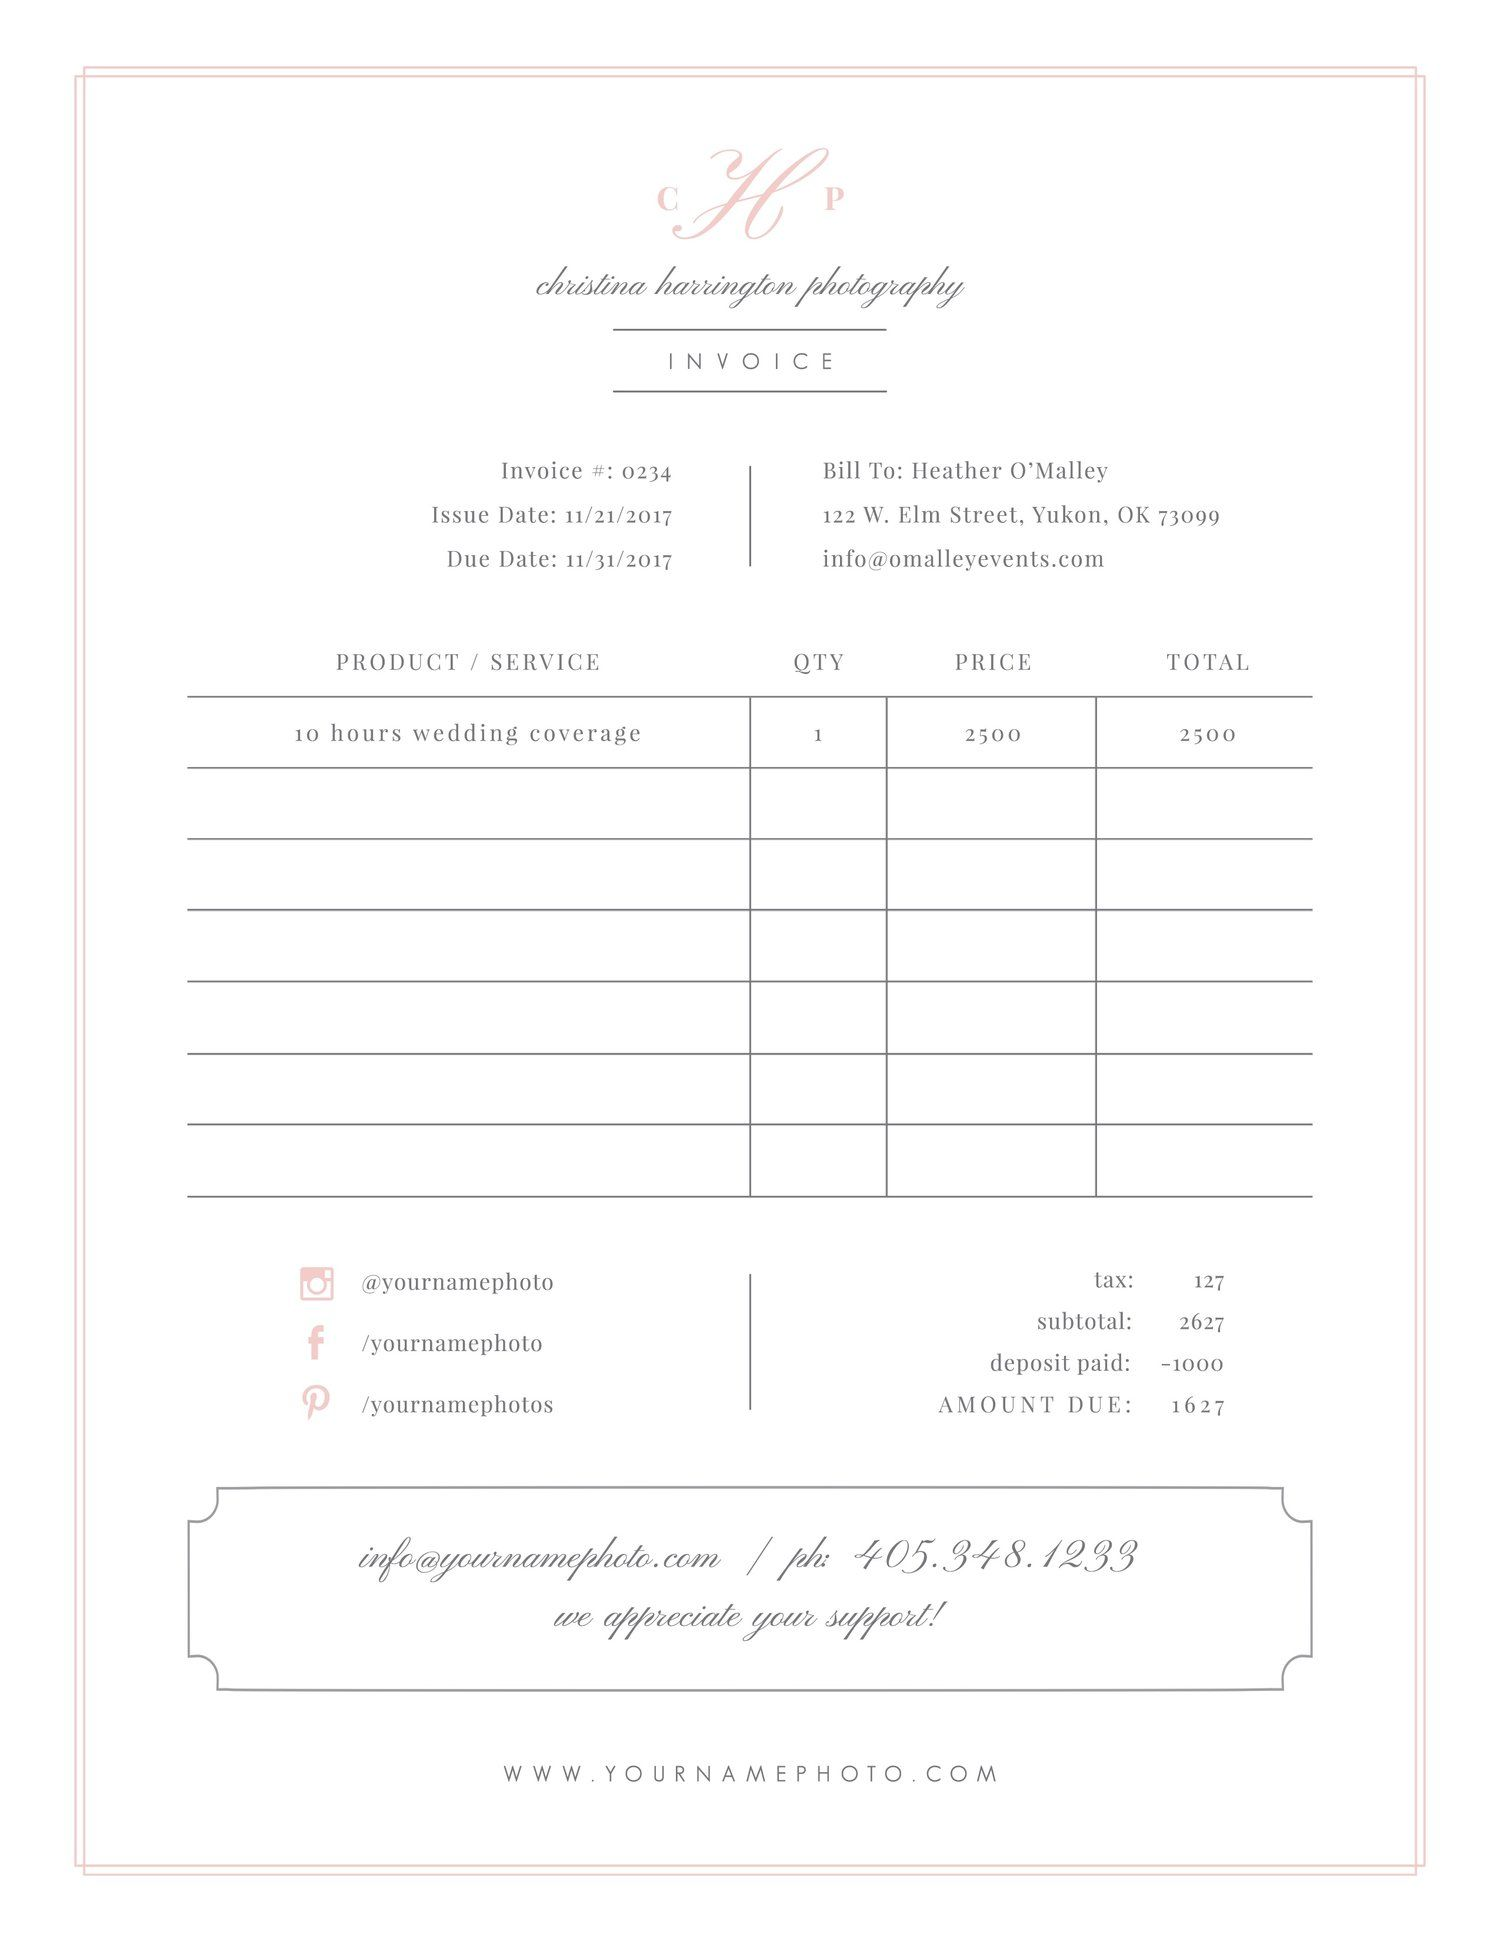 Wedding Photography Contract Template Eucalyptus Photography Contract Wedding Photography Contract Template Wedding Photography Contract